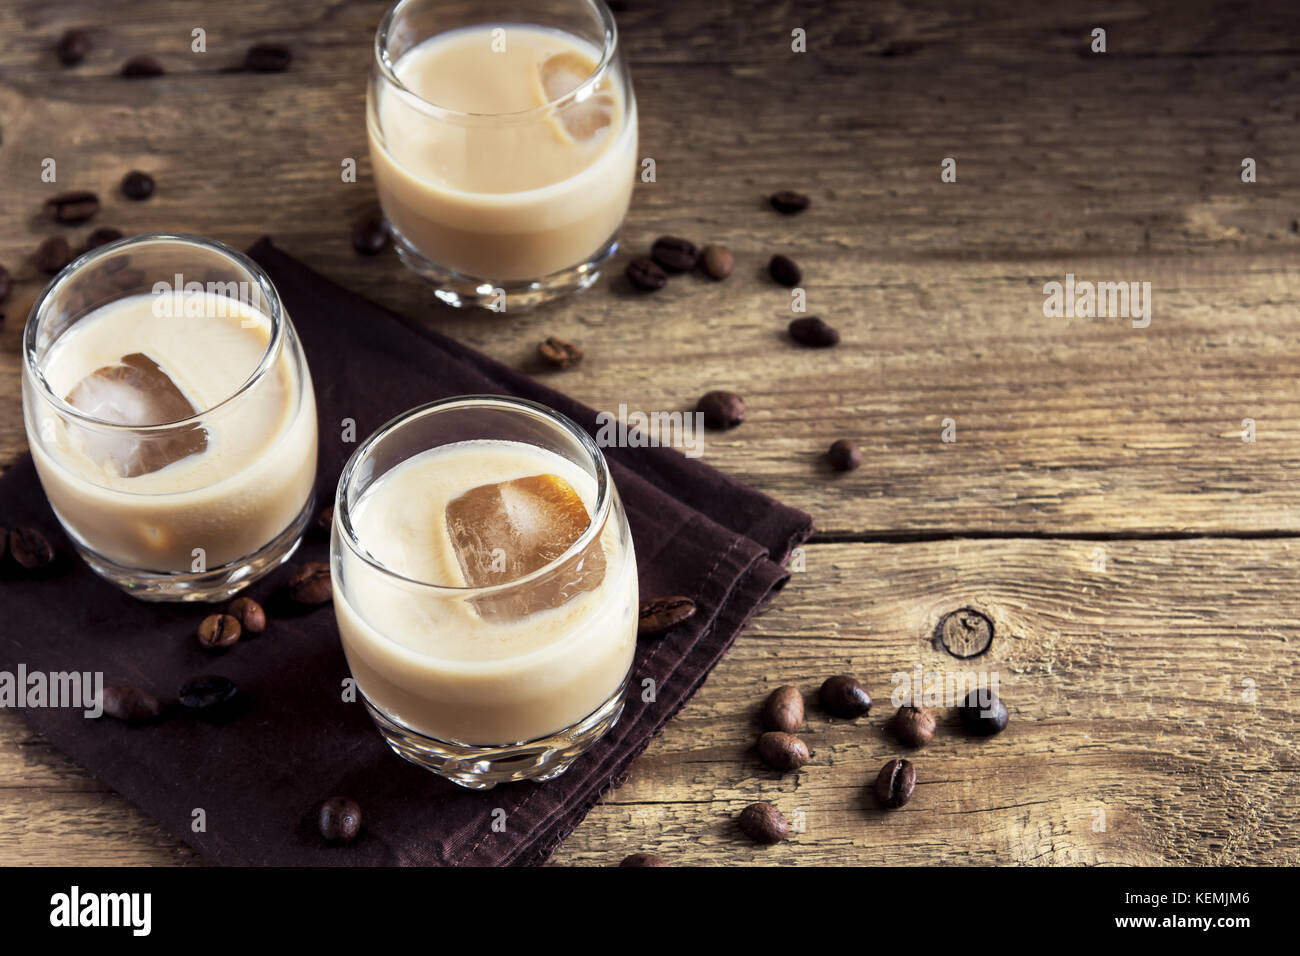 Irish cream coffee liqueur with ice, chocolate candies and coffee beans over rustic wooden background - homemade Stock Photo